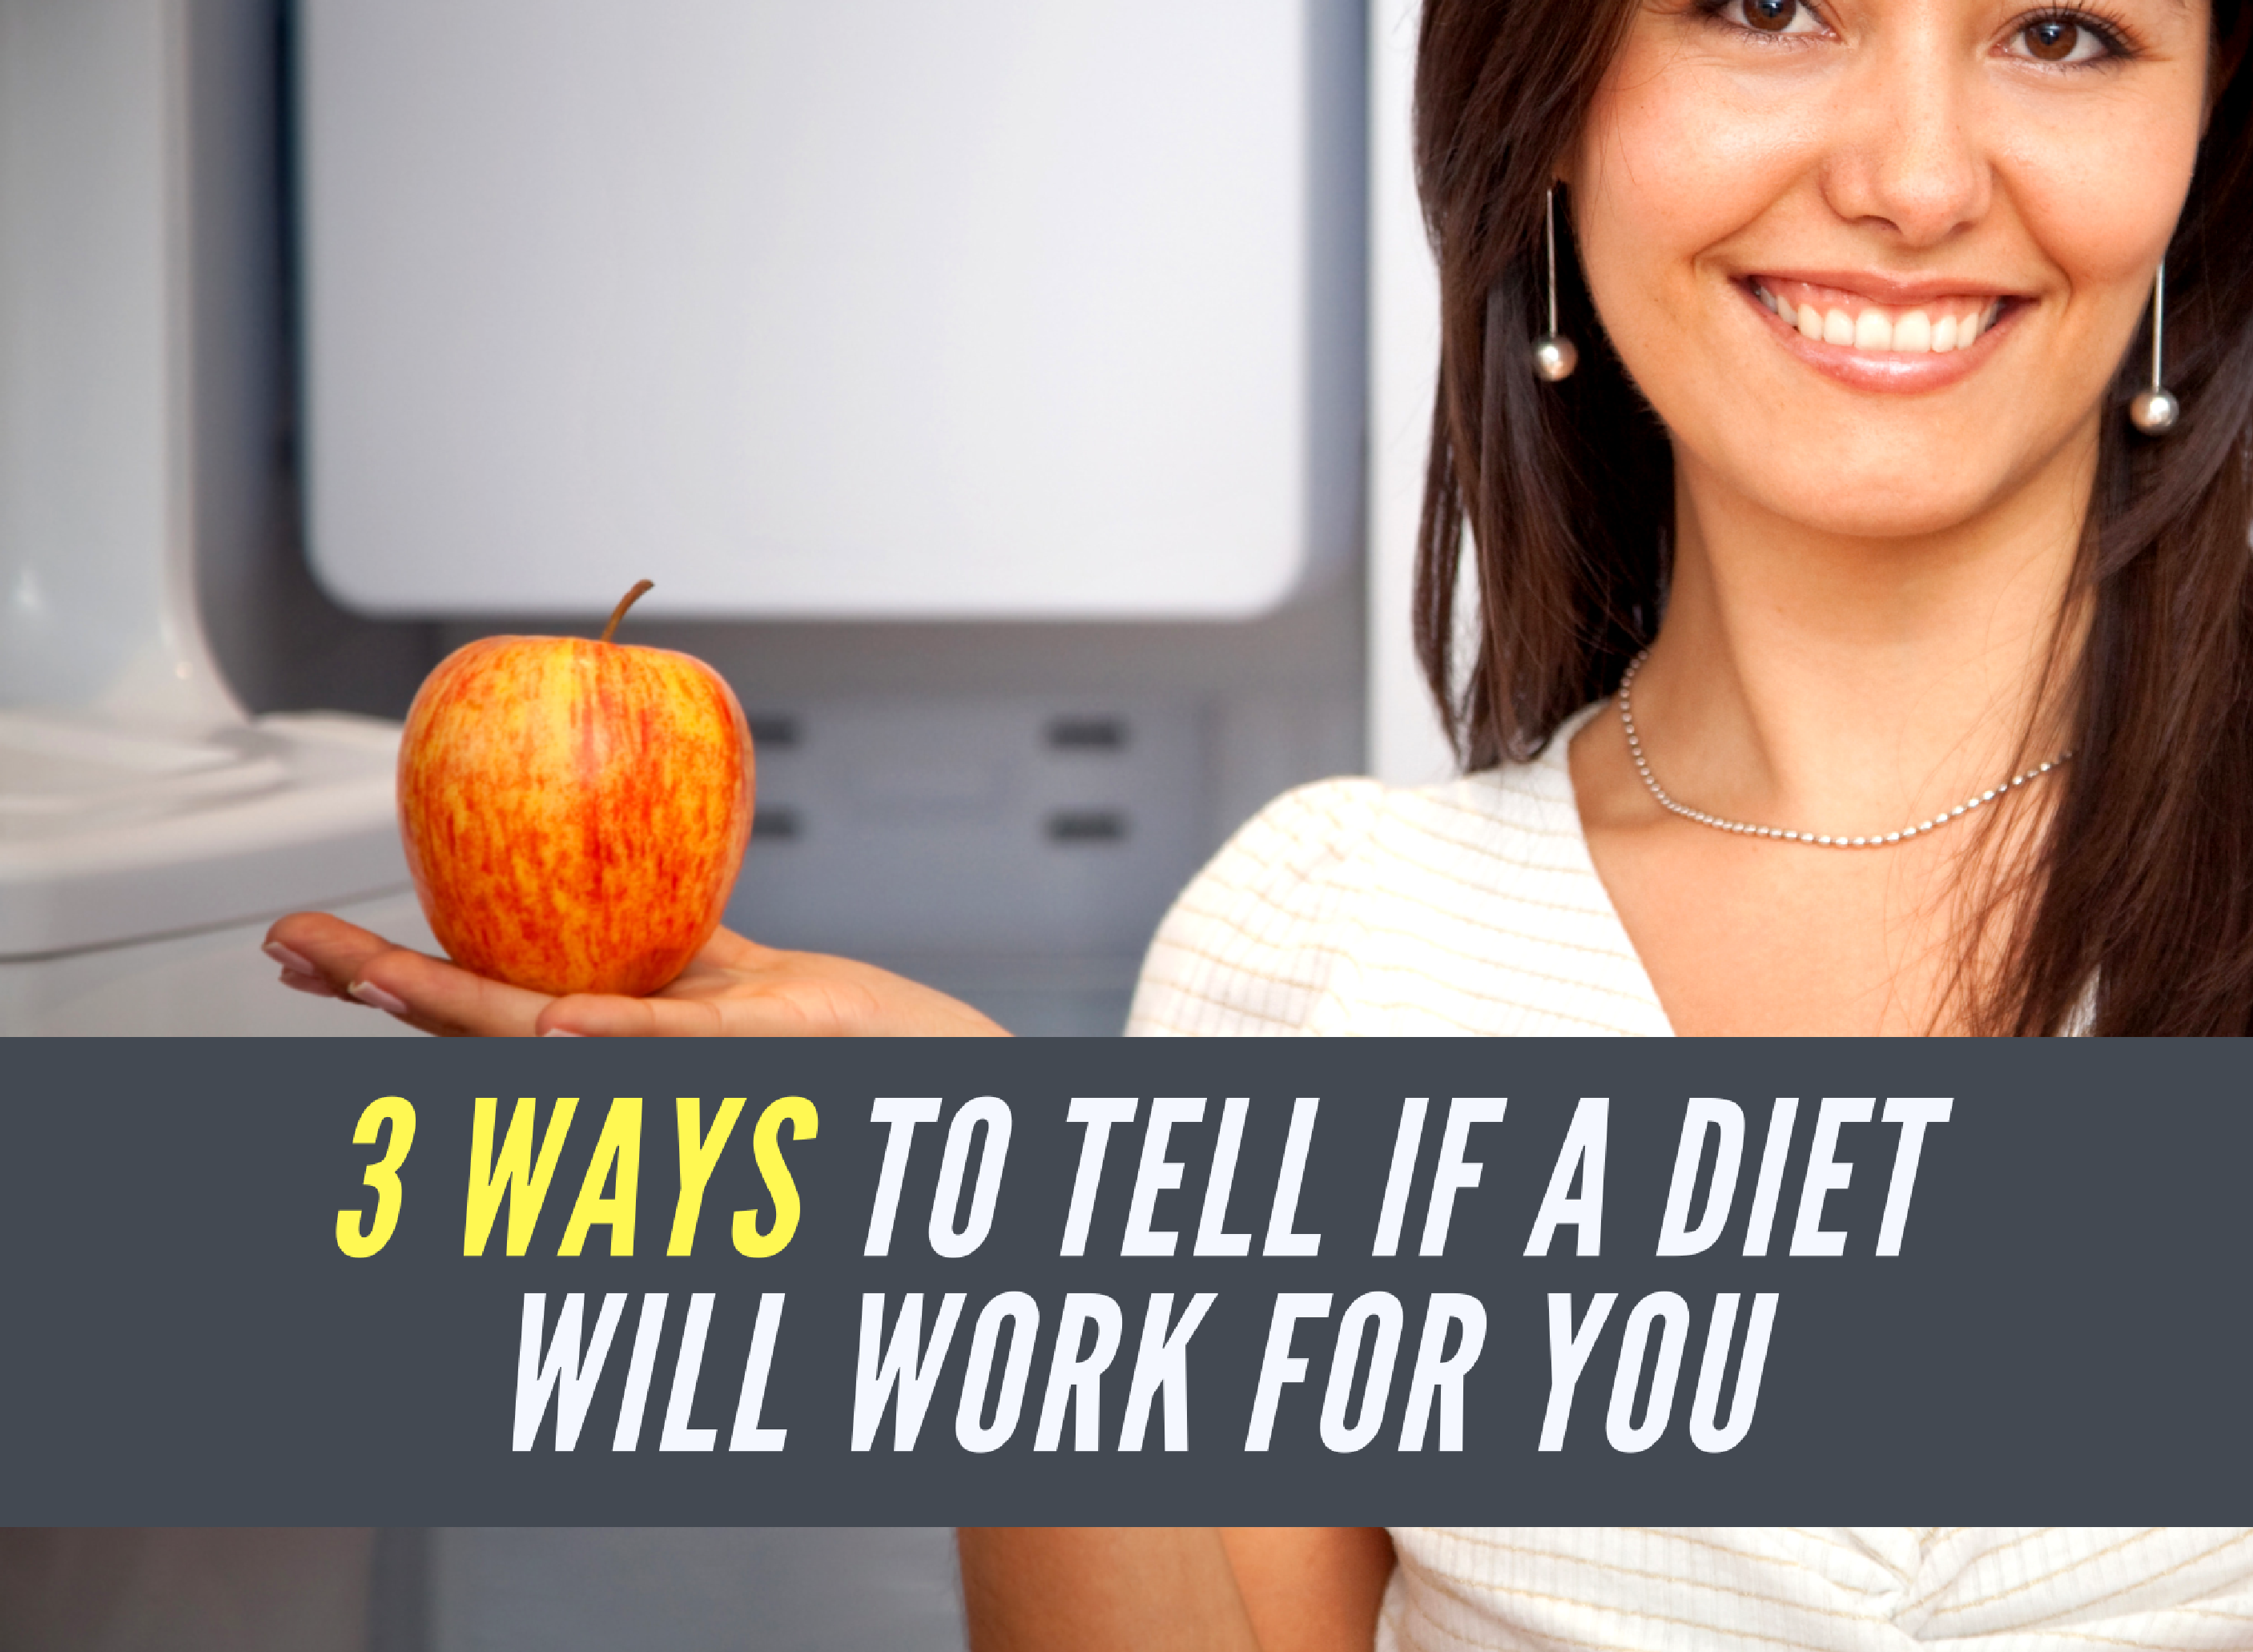 3 Ways to Tell if a Diet Will Work for YOU